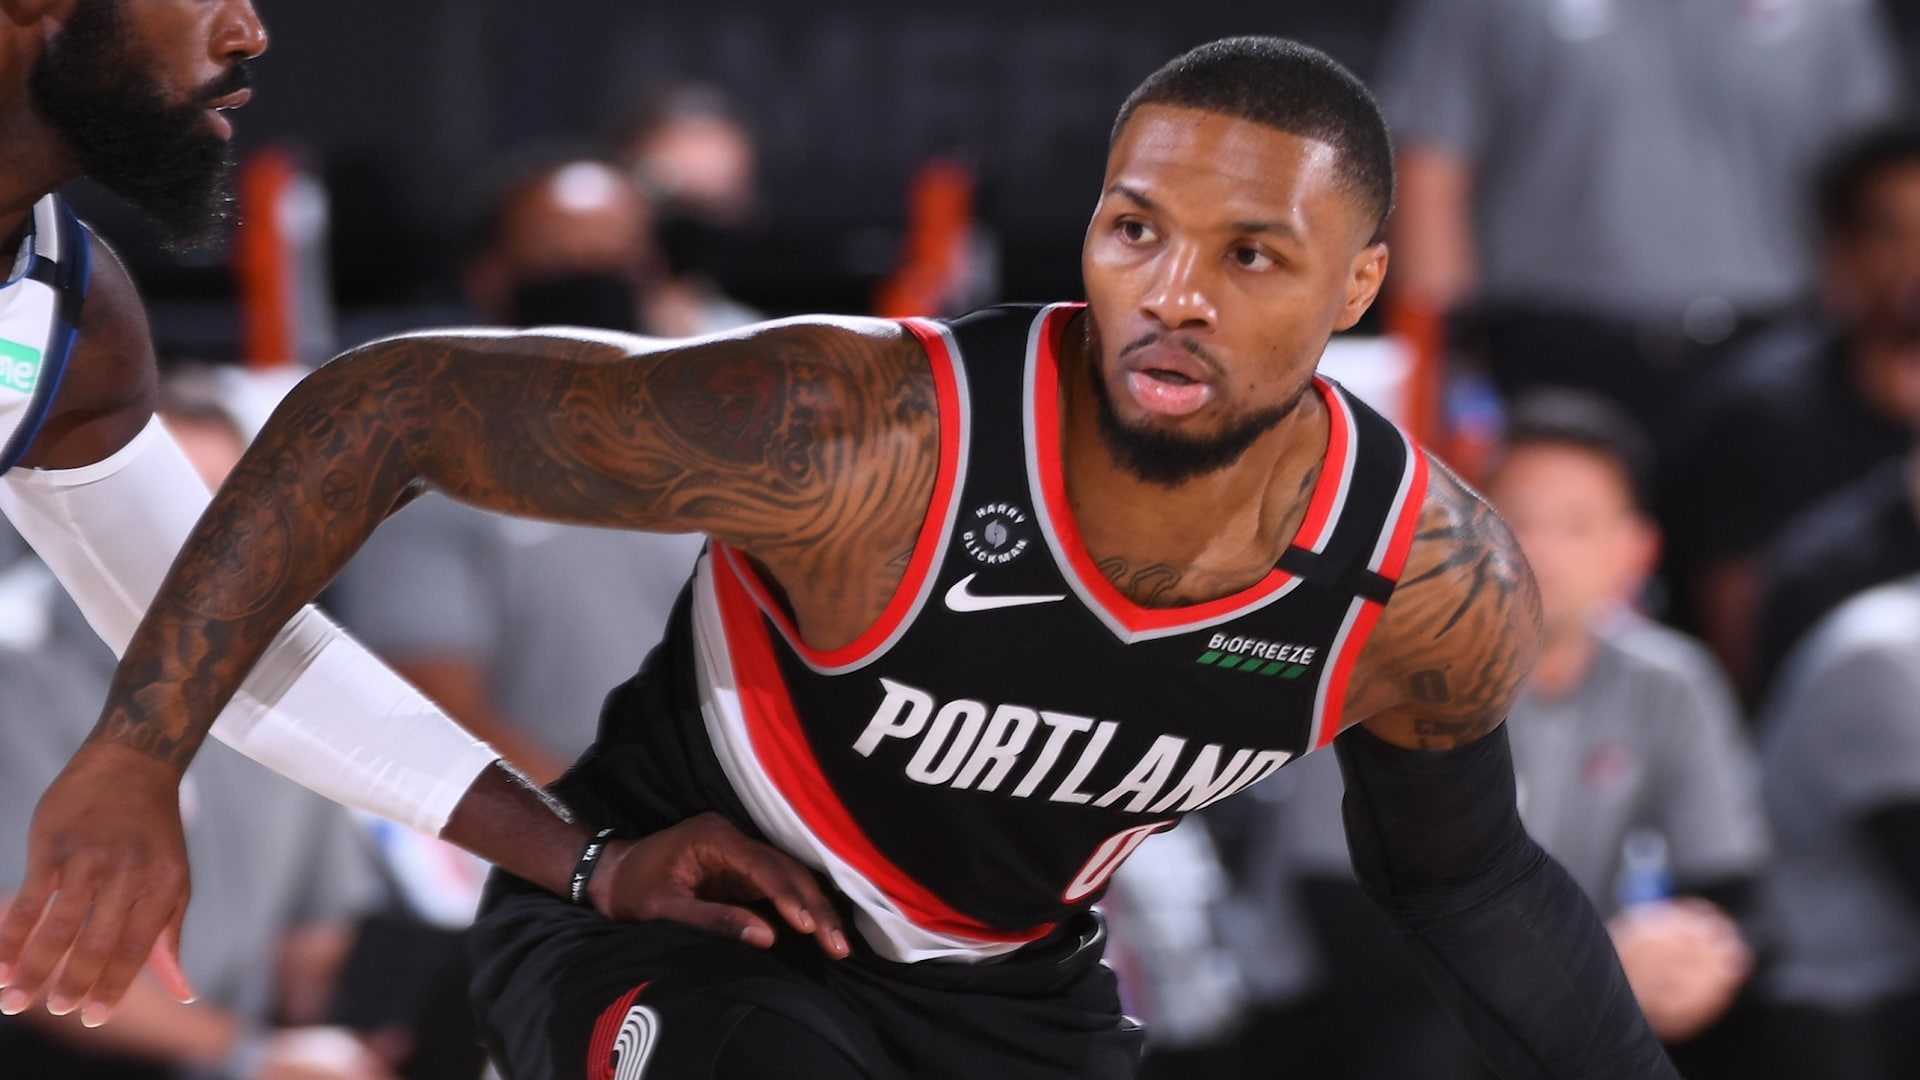 Damian Lillard's rampage means it's 'Dame Time' for the NBA restart